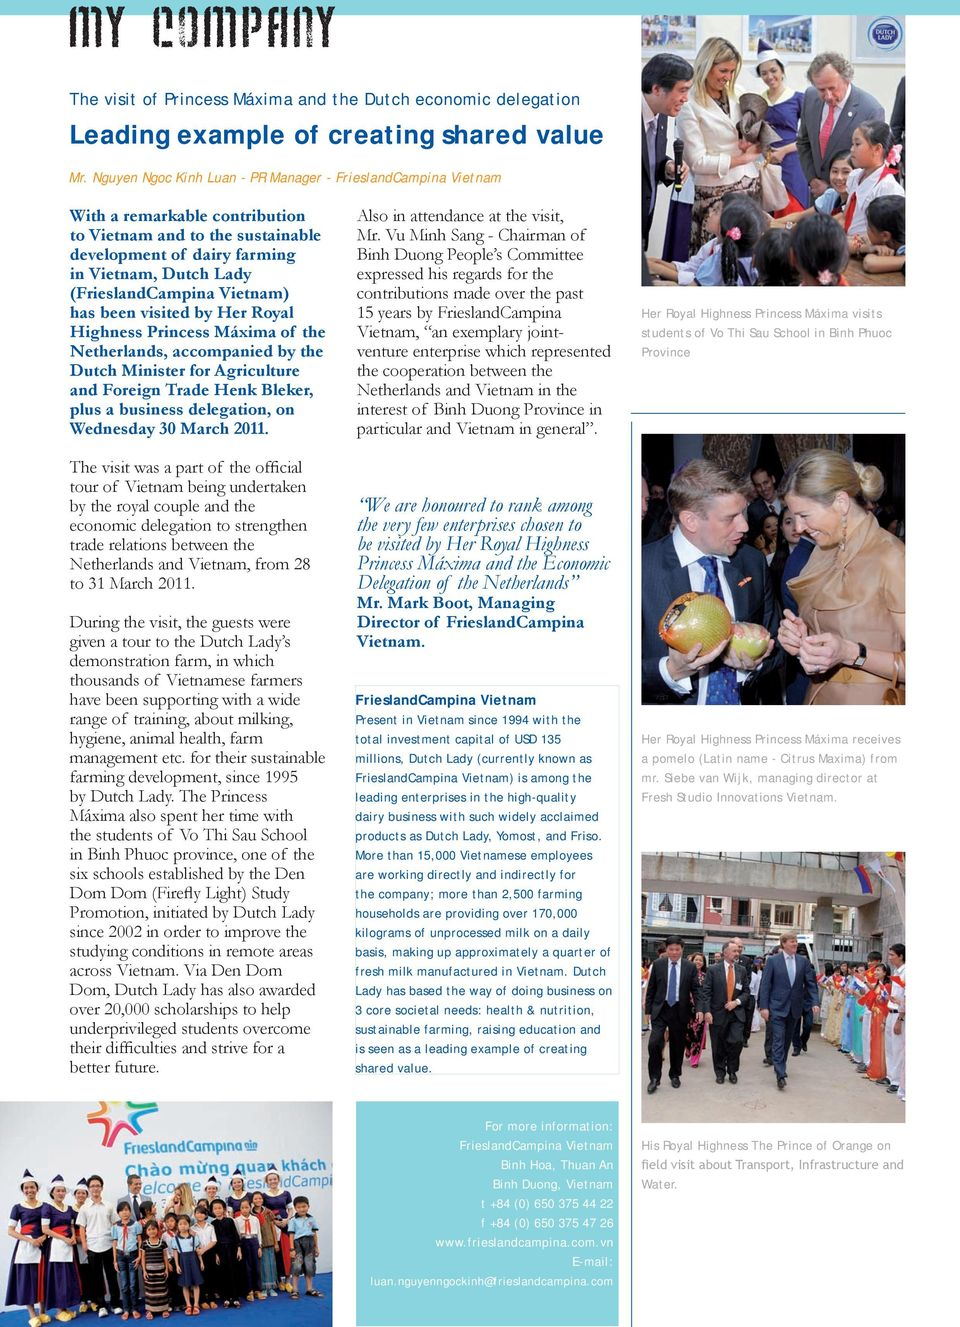 Vietnam) has been visited by Her Royal Highness Princess Máxima of the Netherlands, accompanied by the Dutch Minister for Agriculture and Foreign Trade Henk Bleker, plus a business delegation, on